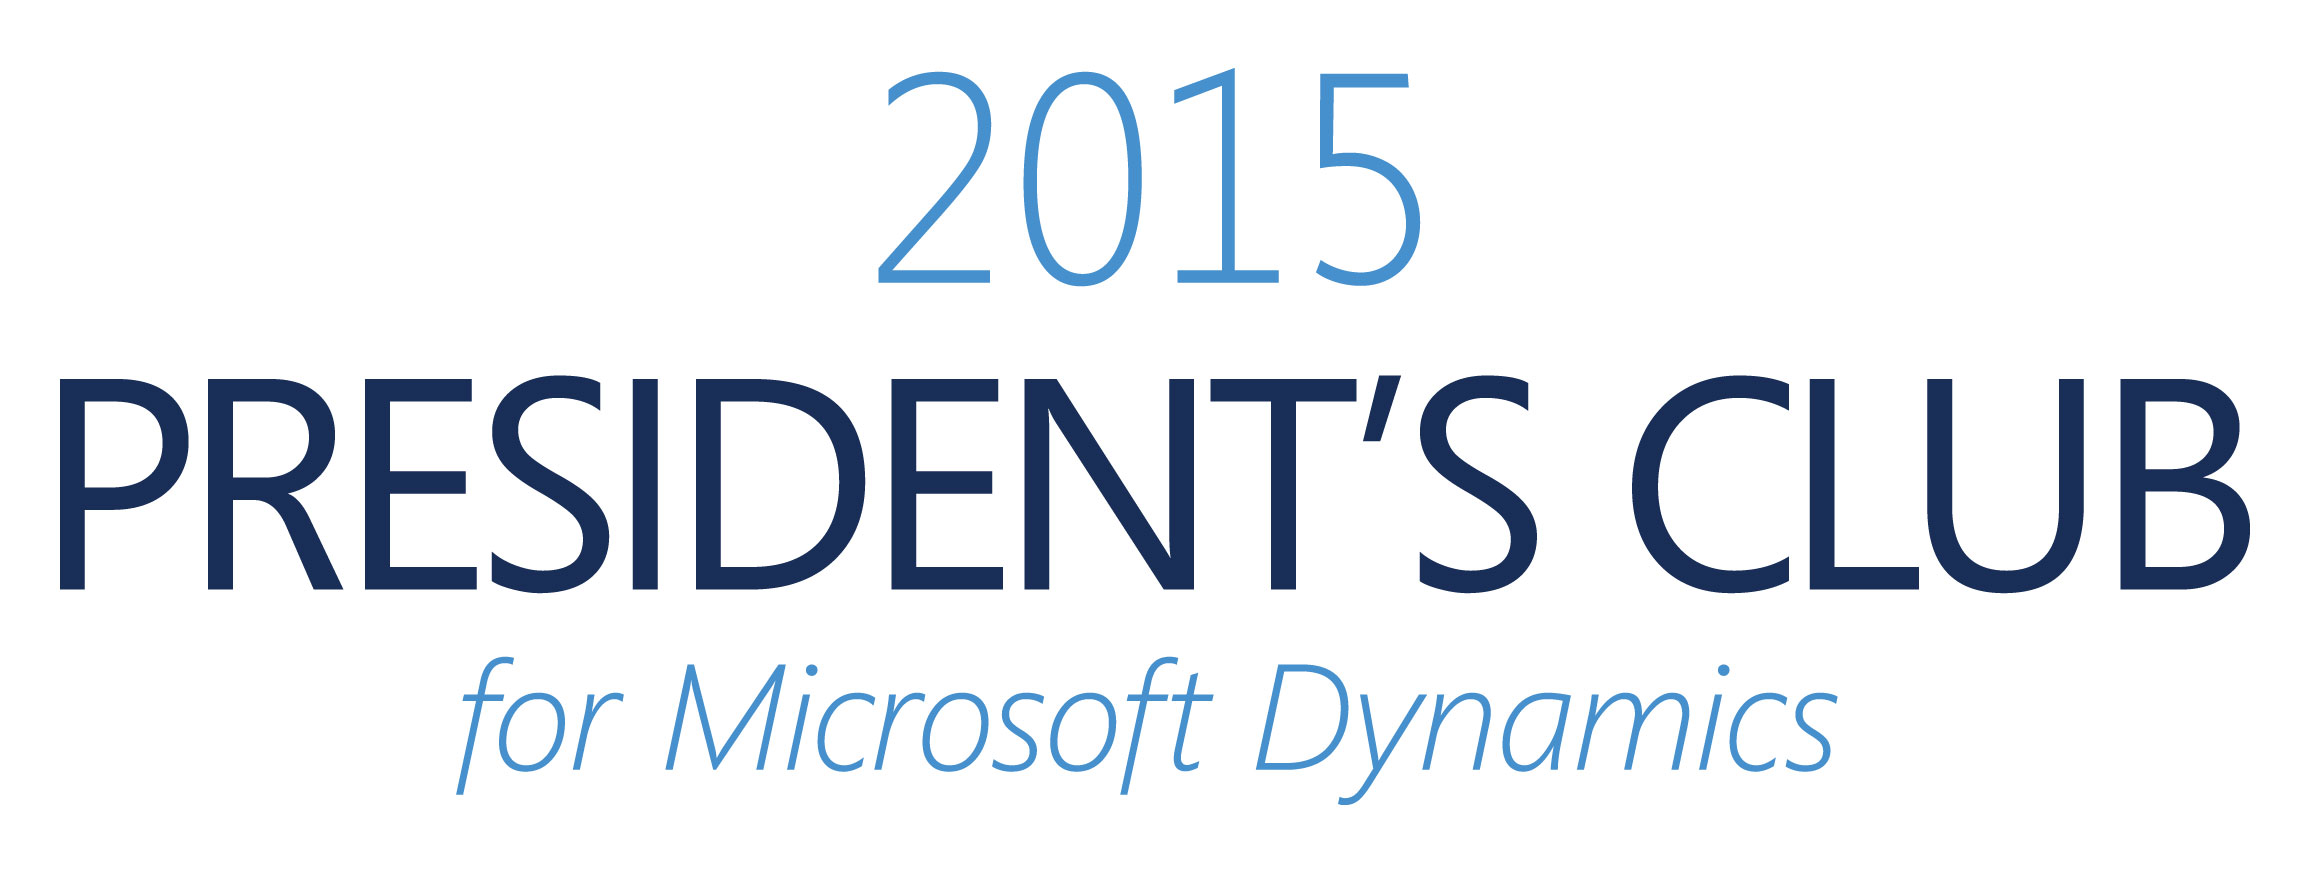 2015 President's Club for Microsoft Dynamics